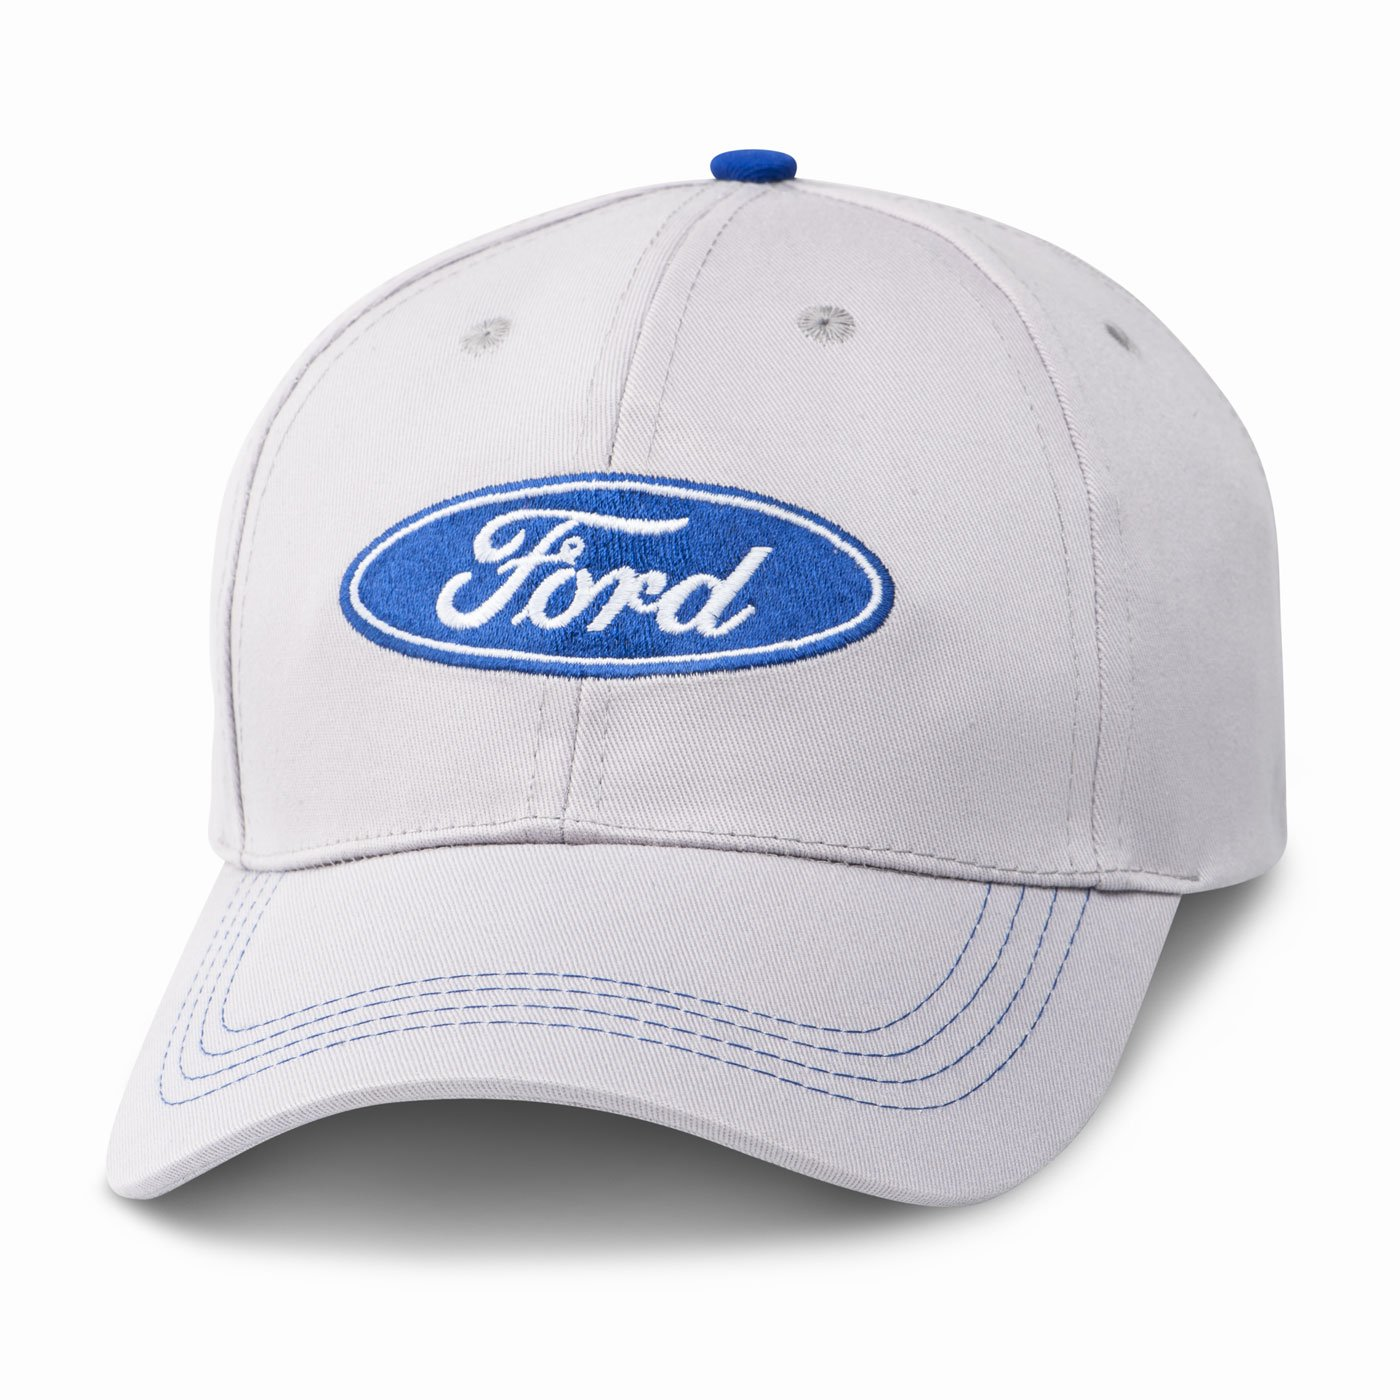 One Size Fits Most Ford Oval Logo Light Gray Baseball Cap Black